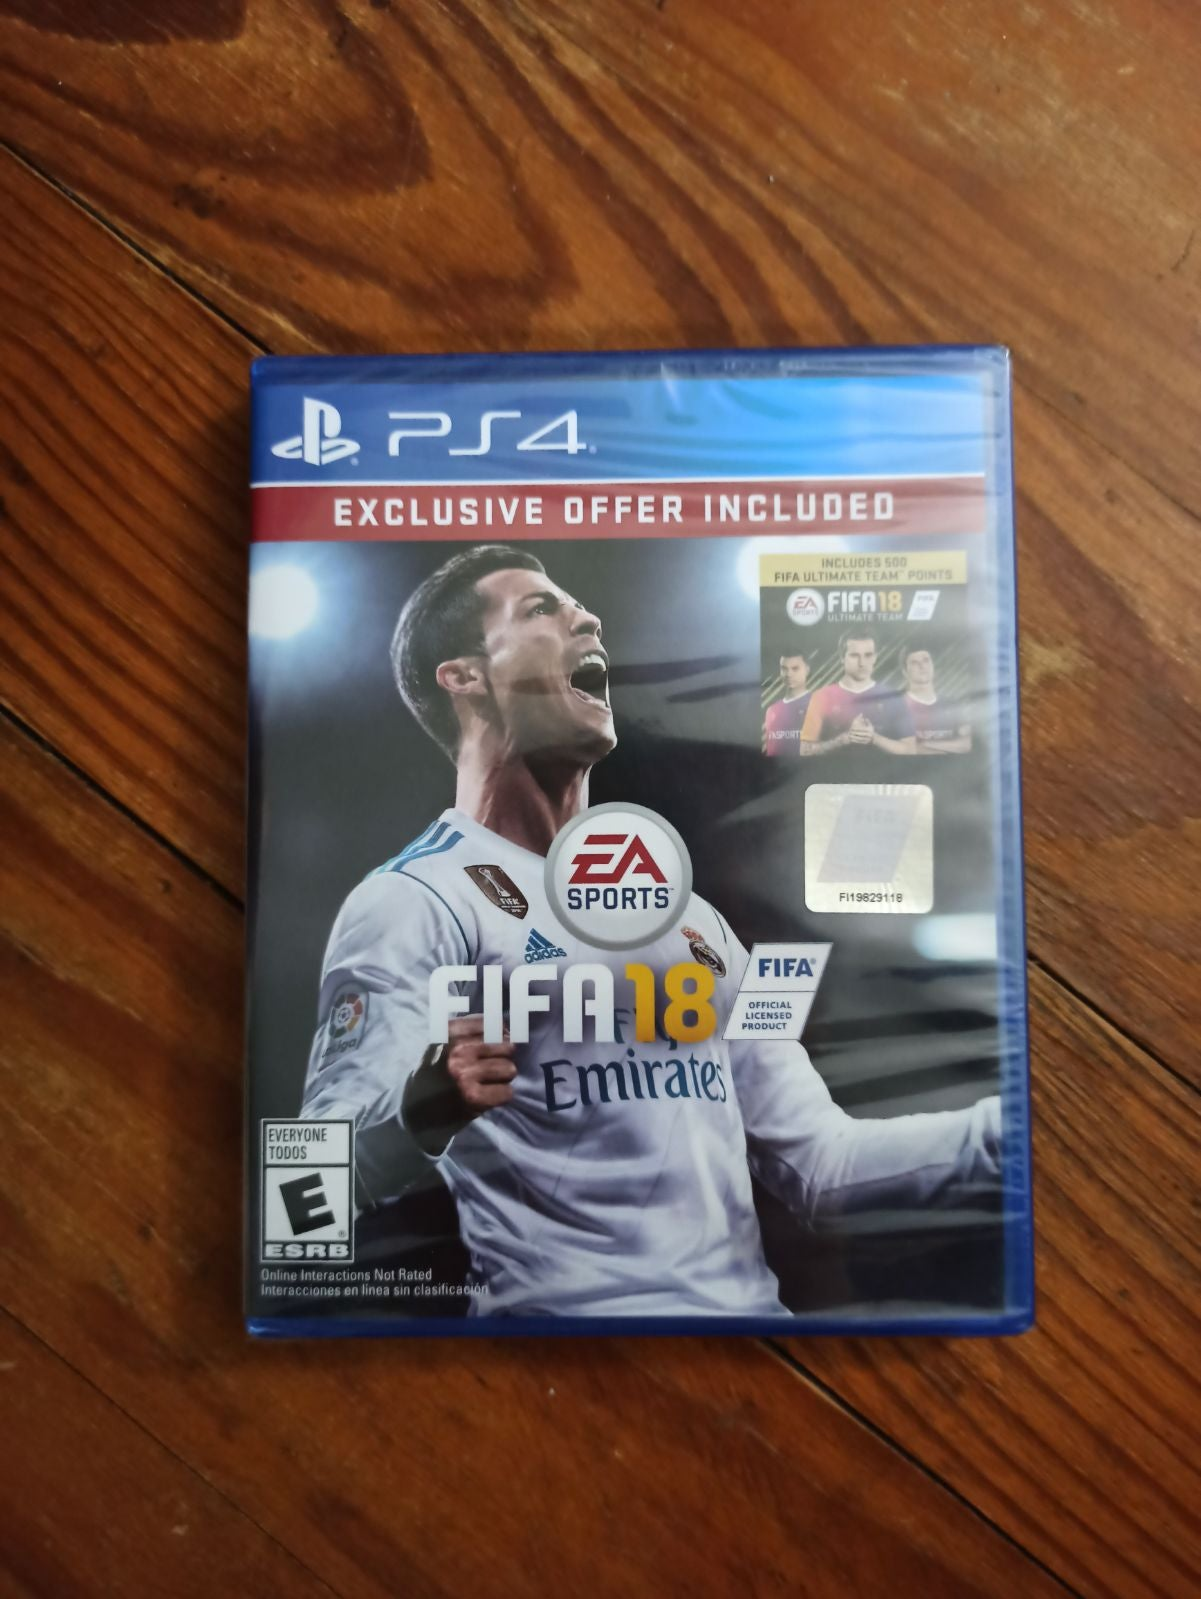 FIFA 18 soccer PS4 game